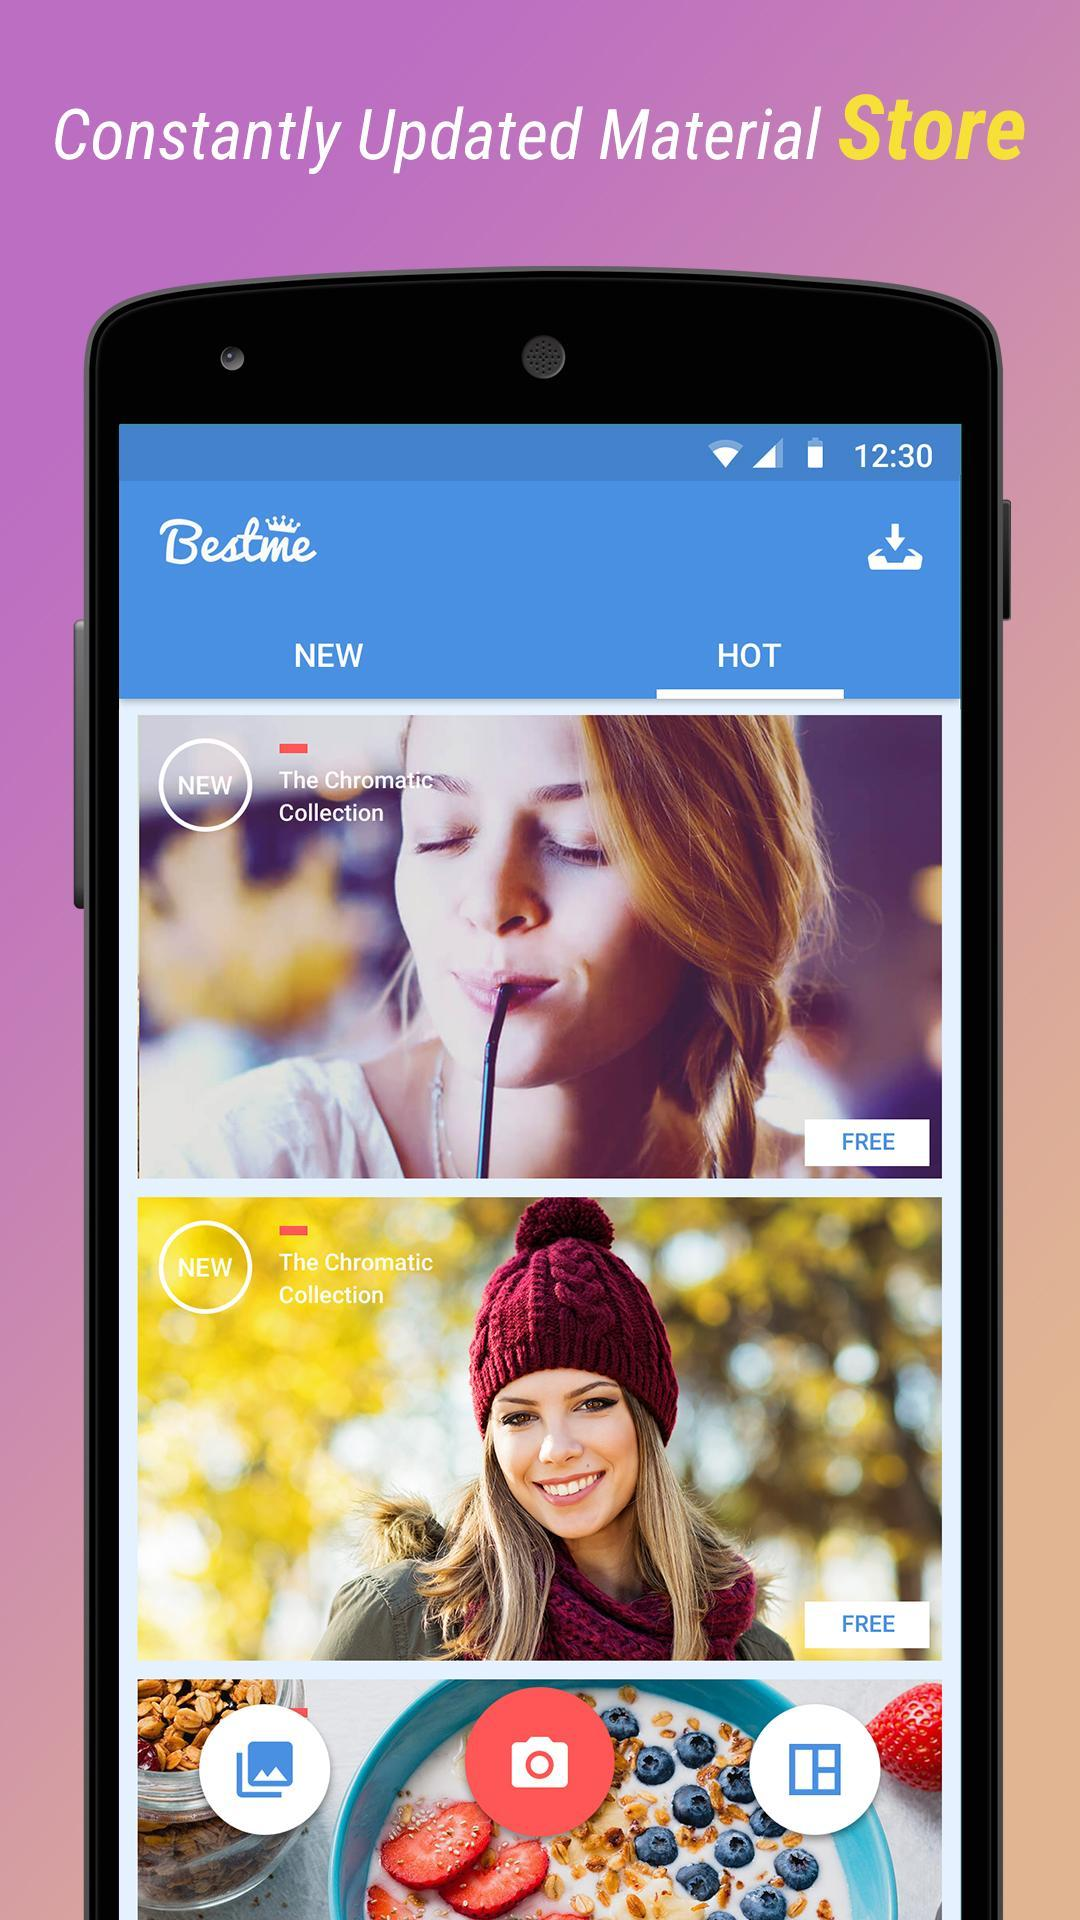 BestMe Selfie Camera for Android - APK Download